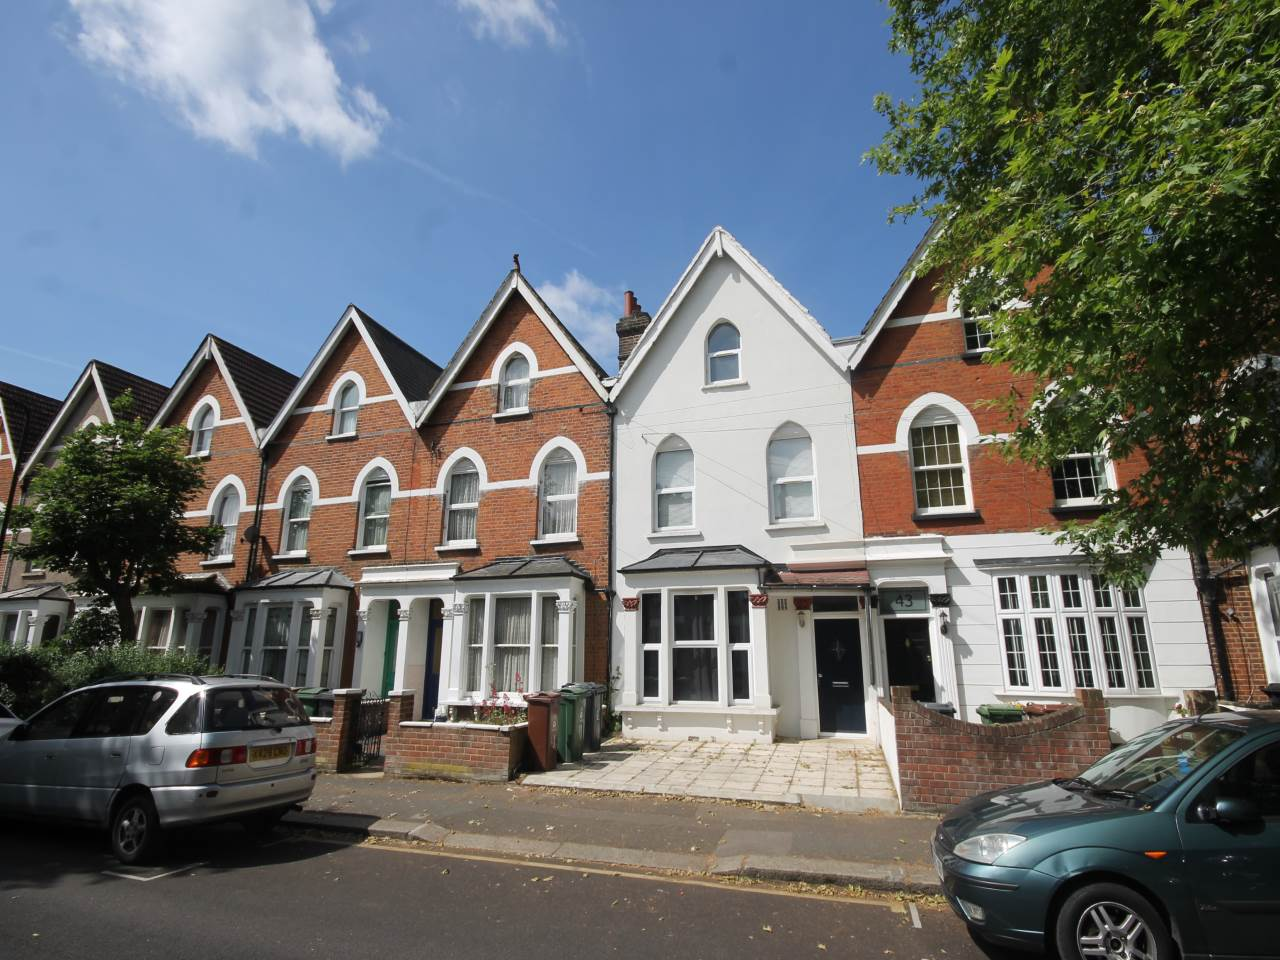 4 bed house to rent in Walthamstow - Property Image 1